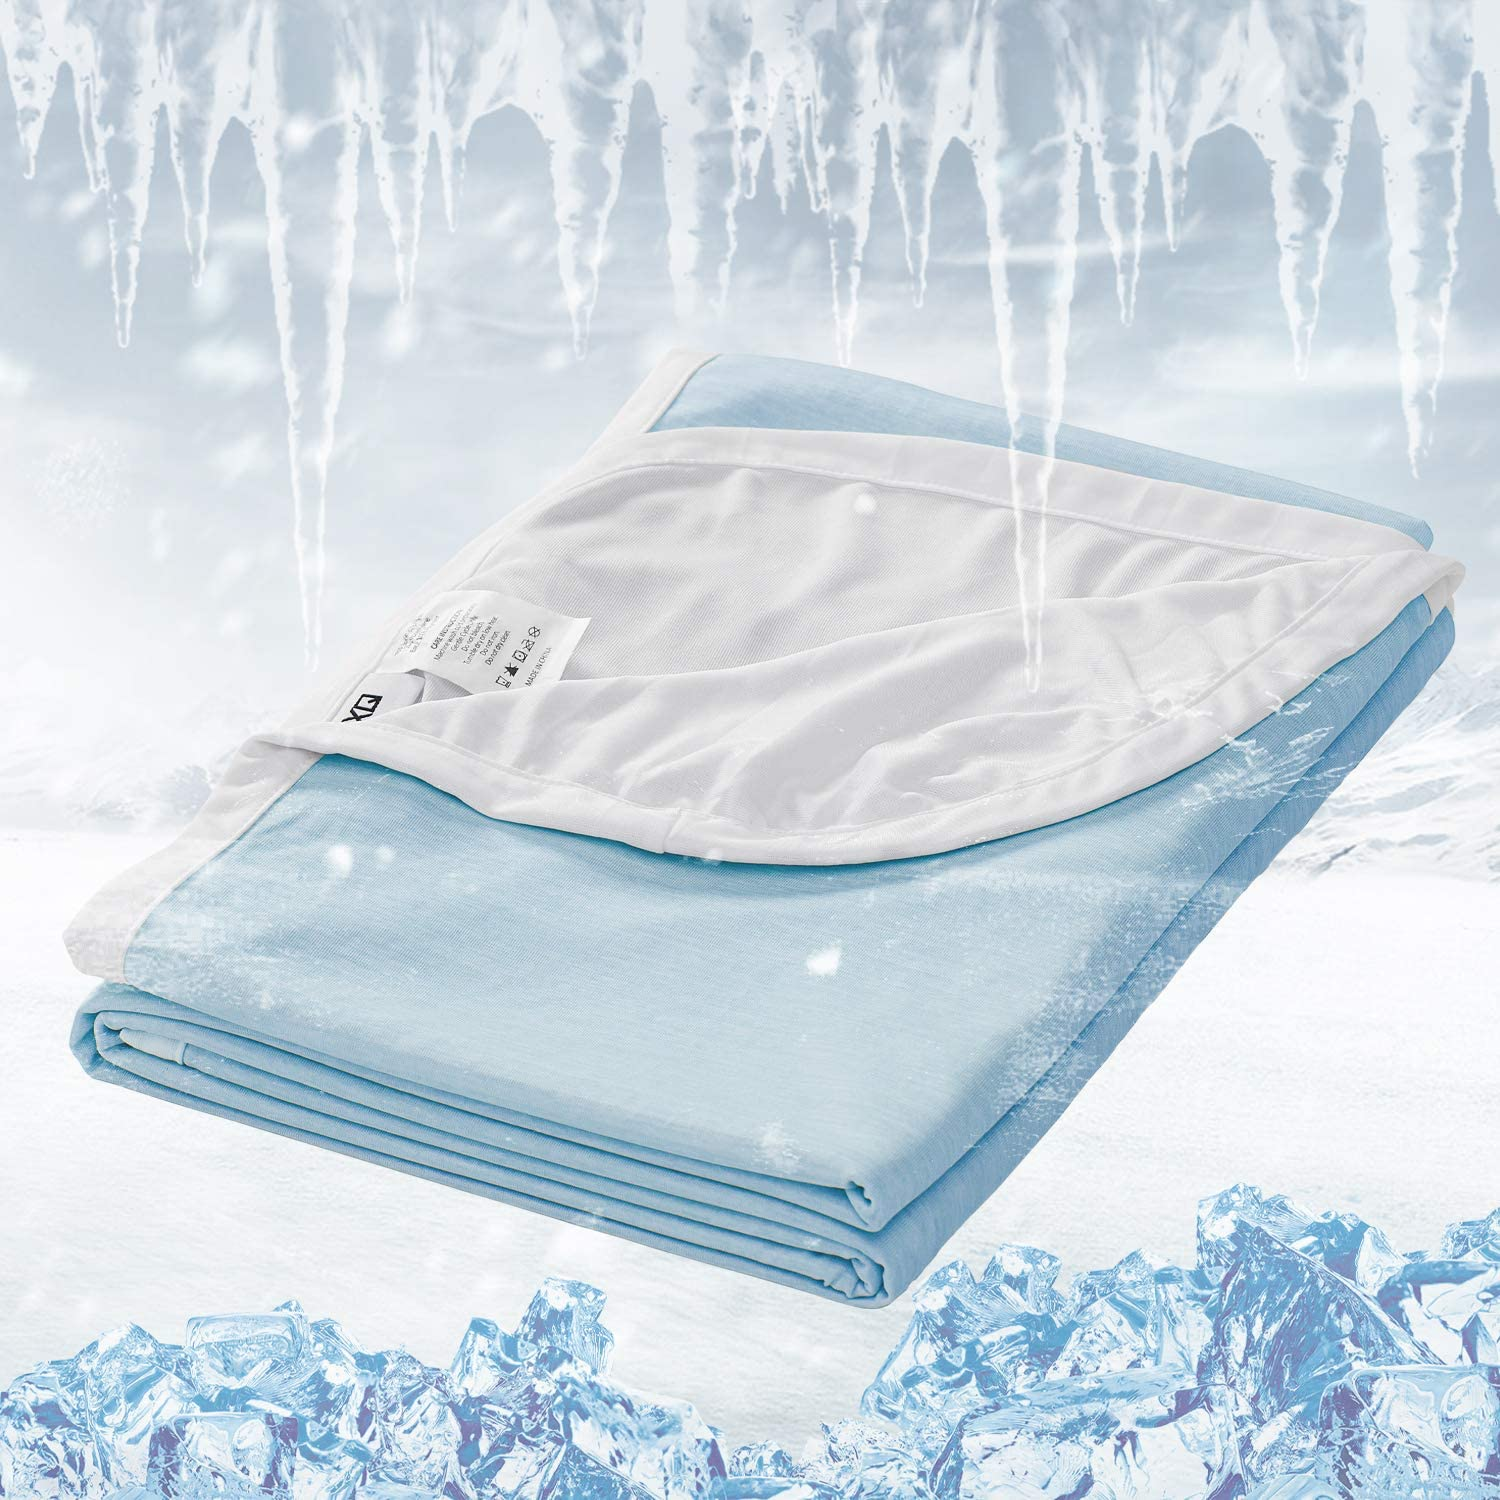 """EXQ Home Cooling Blanket Cooling Blankets for Sleeping Summer Blanket for Hot Sleepers,Breathable Light Summer Blanket Q-Max>0.4 Cooling Fiber Blue Bed Blanket (60""""x80"""",Twin Size)"""